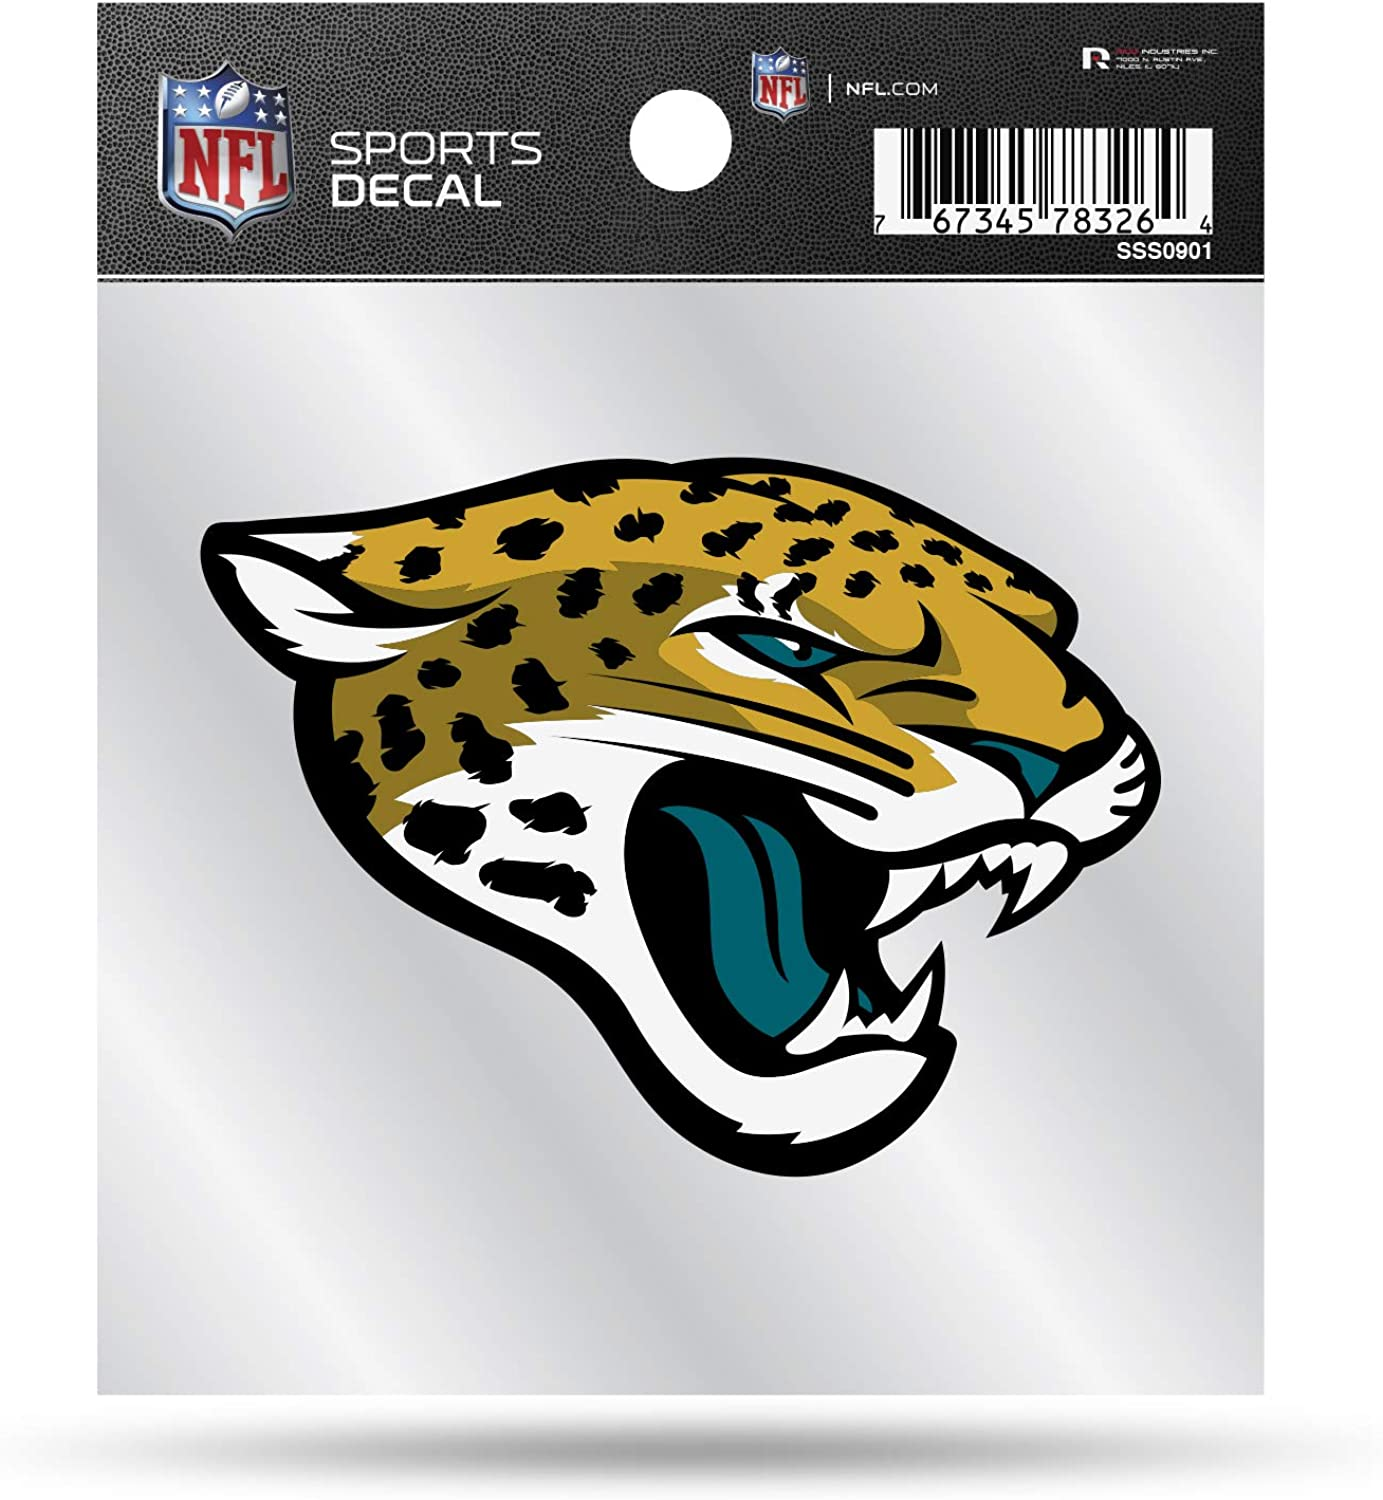 NFL Jacksonville Jaguars Primary Logo 4x4 Decal, Team Color, Size of individual decal will vary